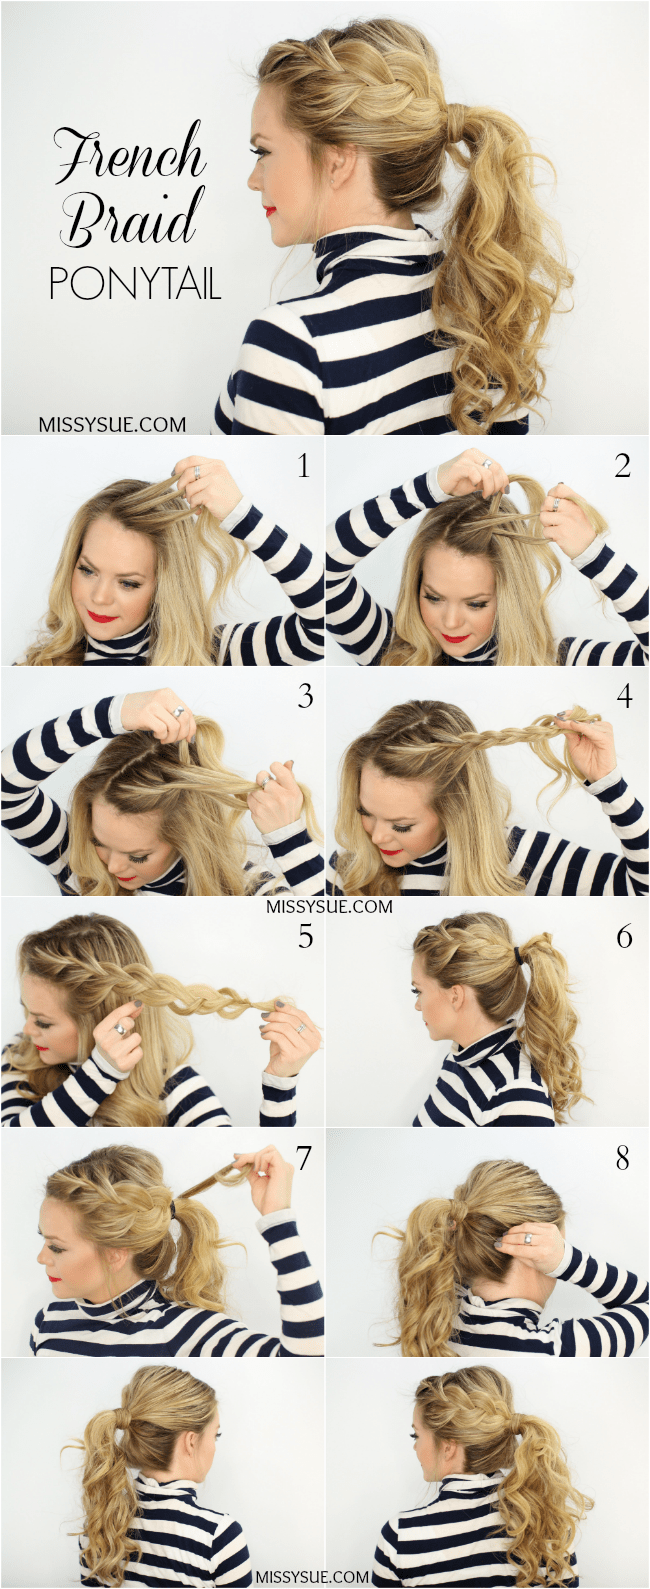 Side french braid ponytail solutioingenieria